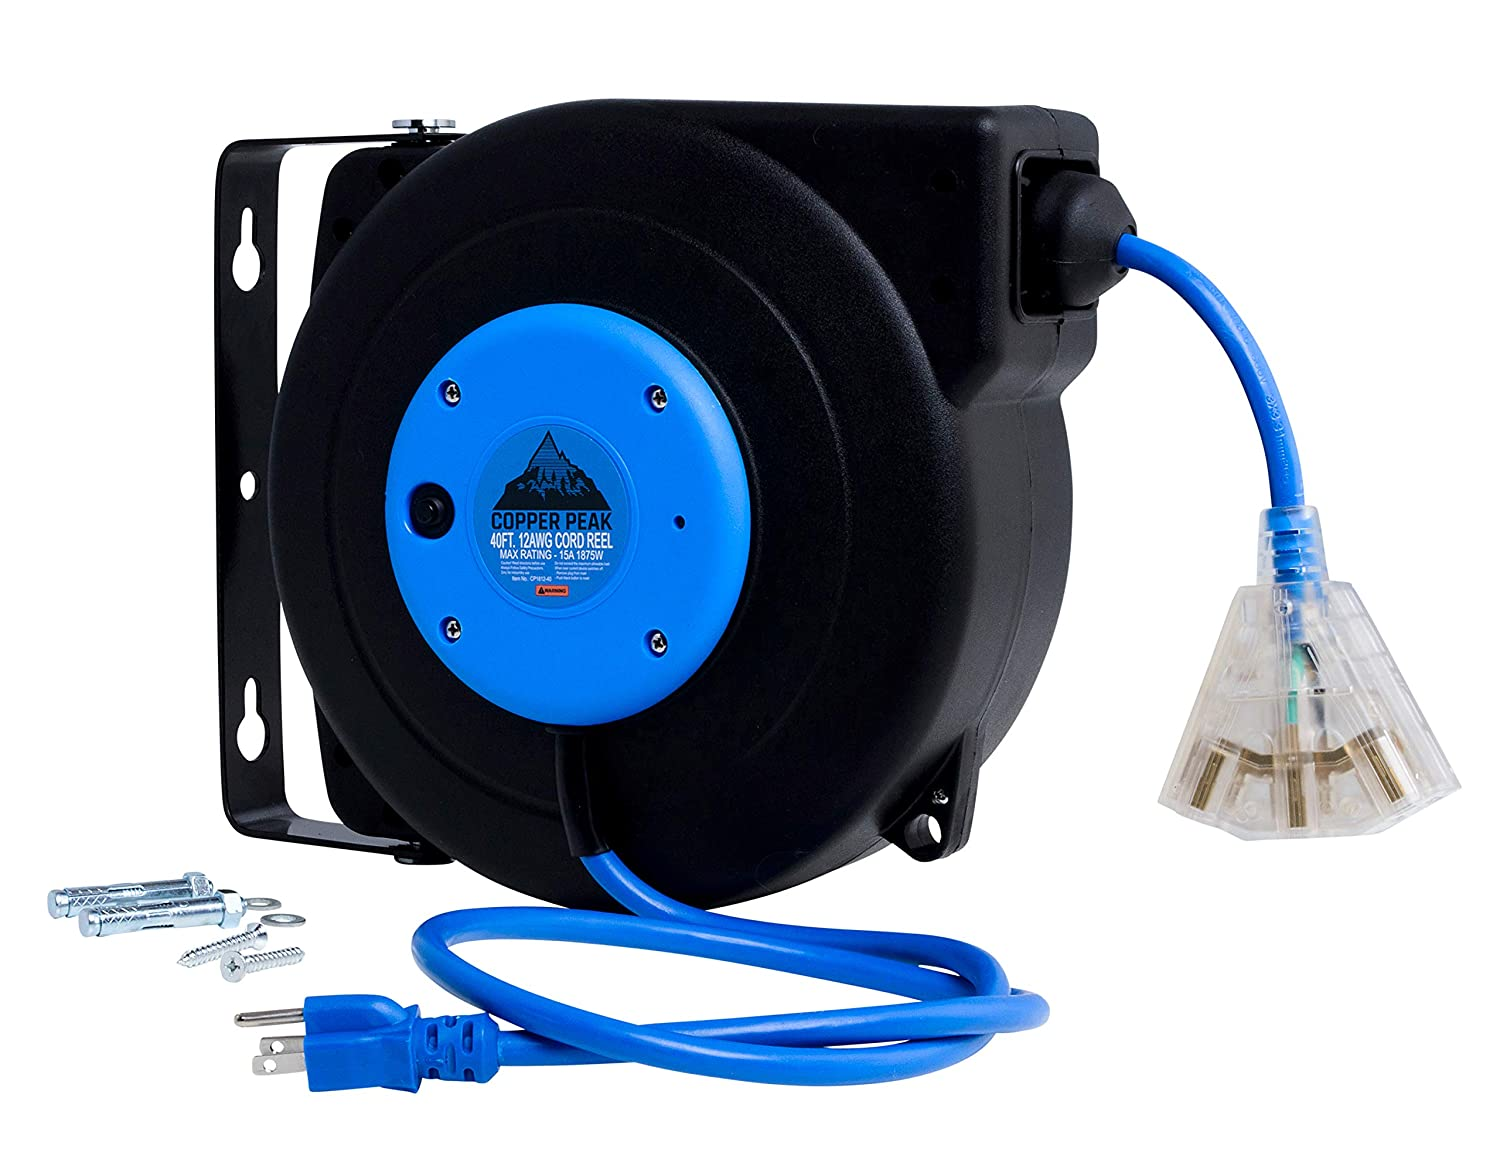 CopperPeak 40 Foot Retractable Extension Cord Reel - Ceiling or Wall Mount - 12 Gauge - Blue and Black